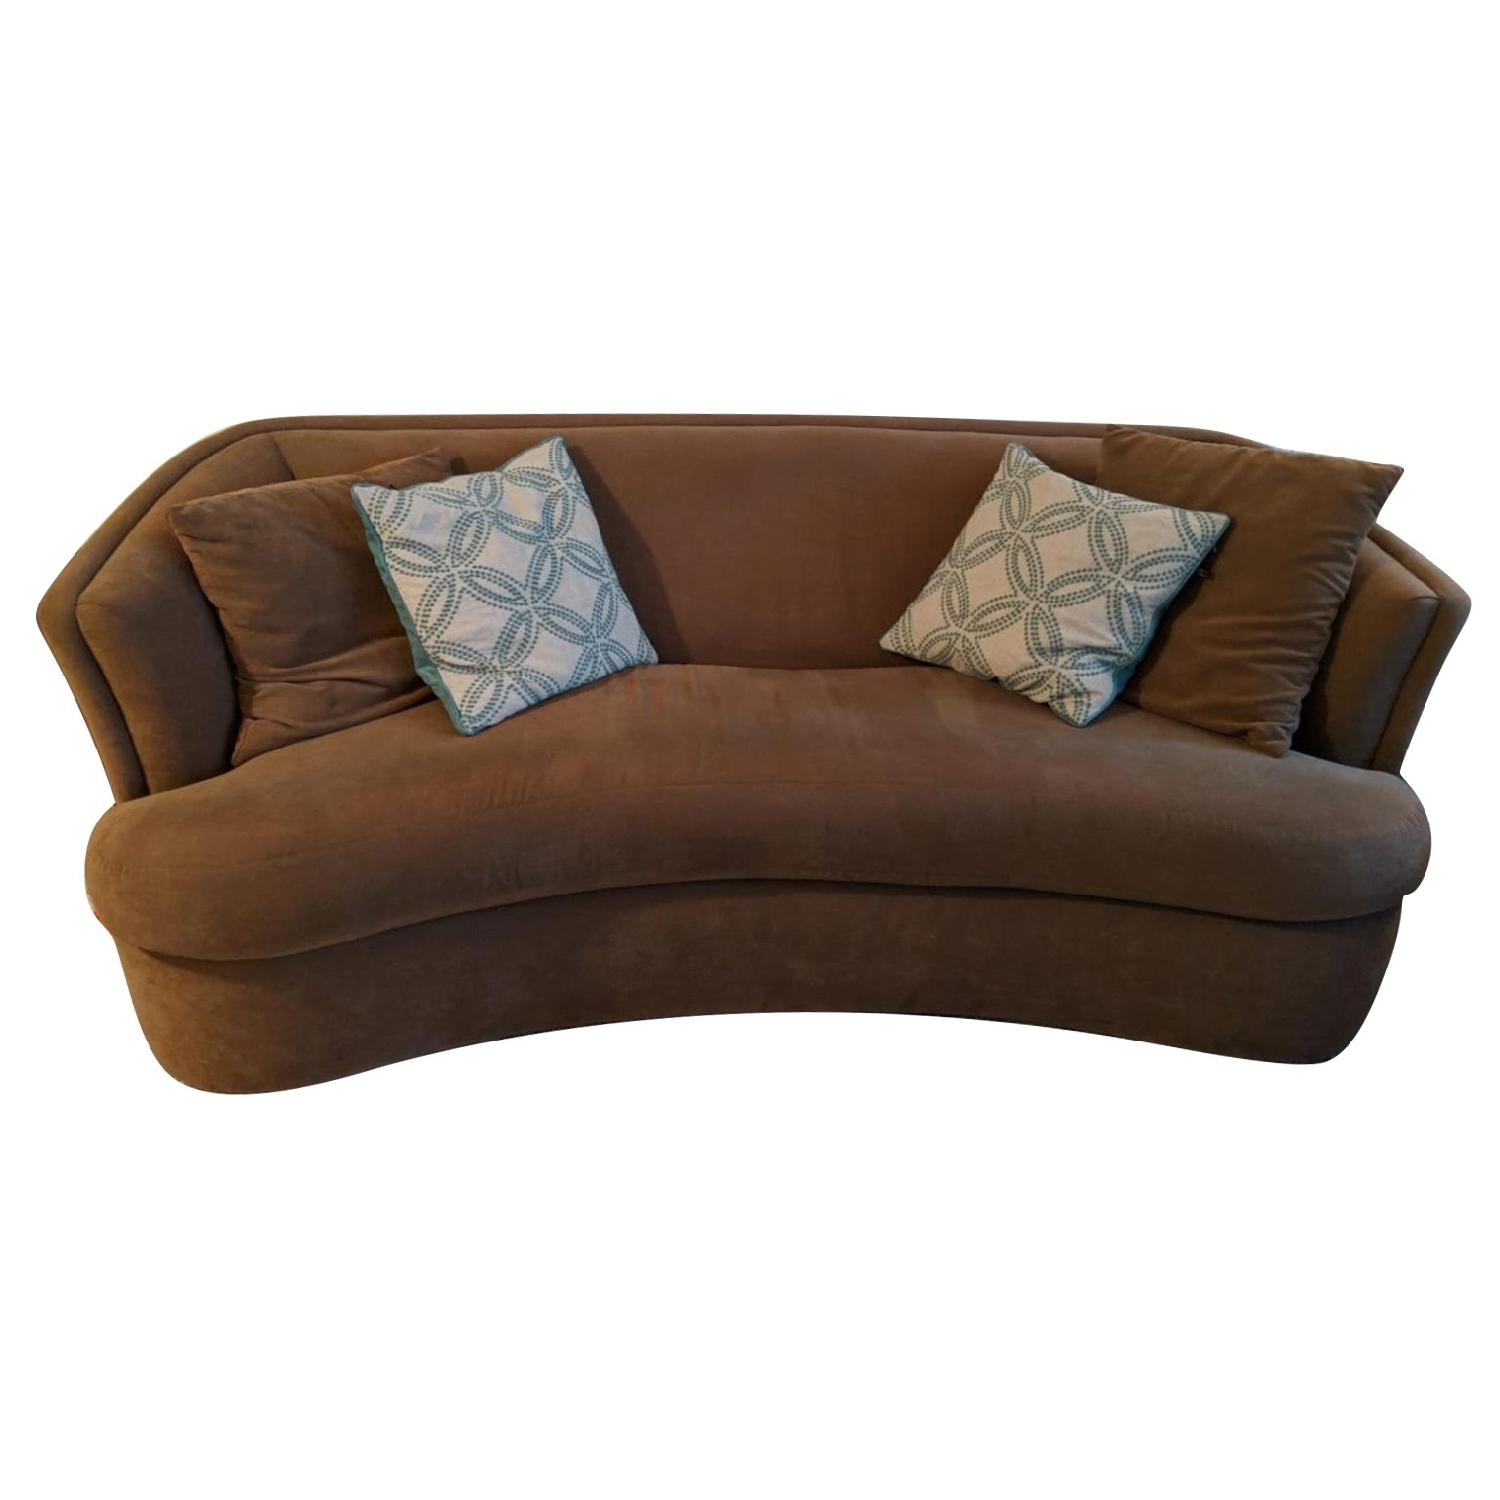 Tan Suede Curved Sofa